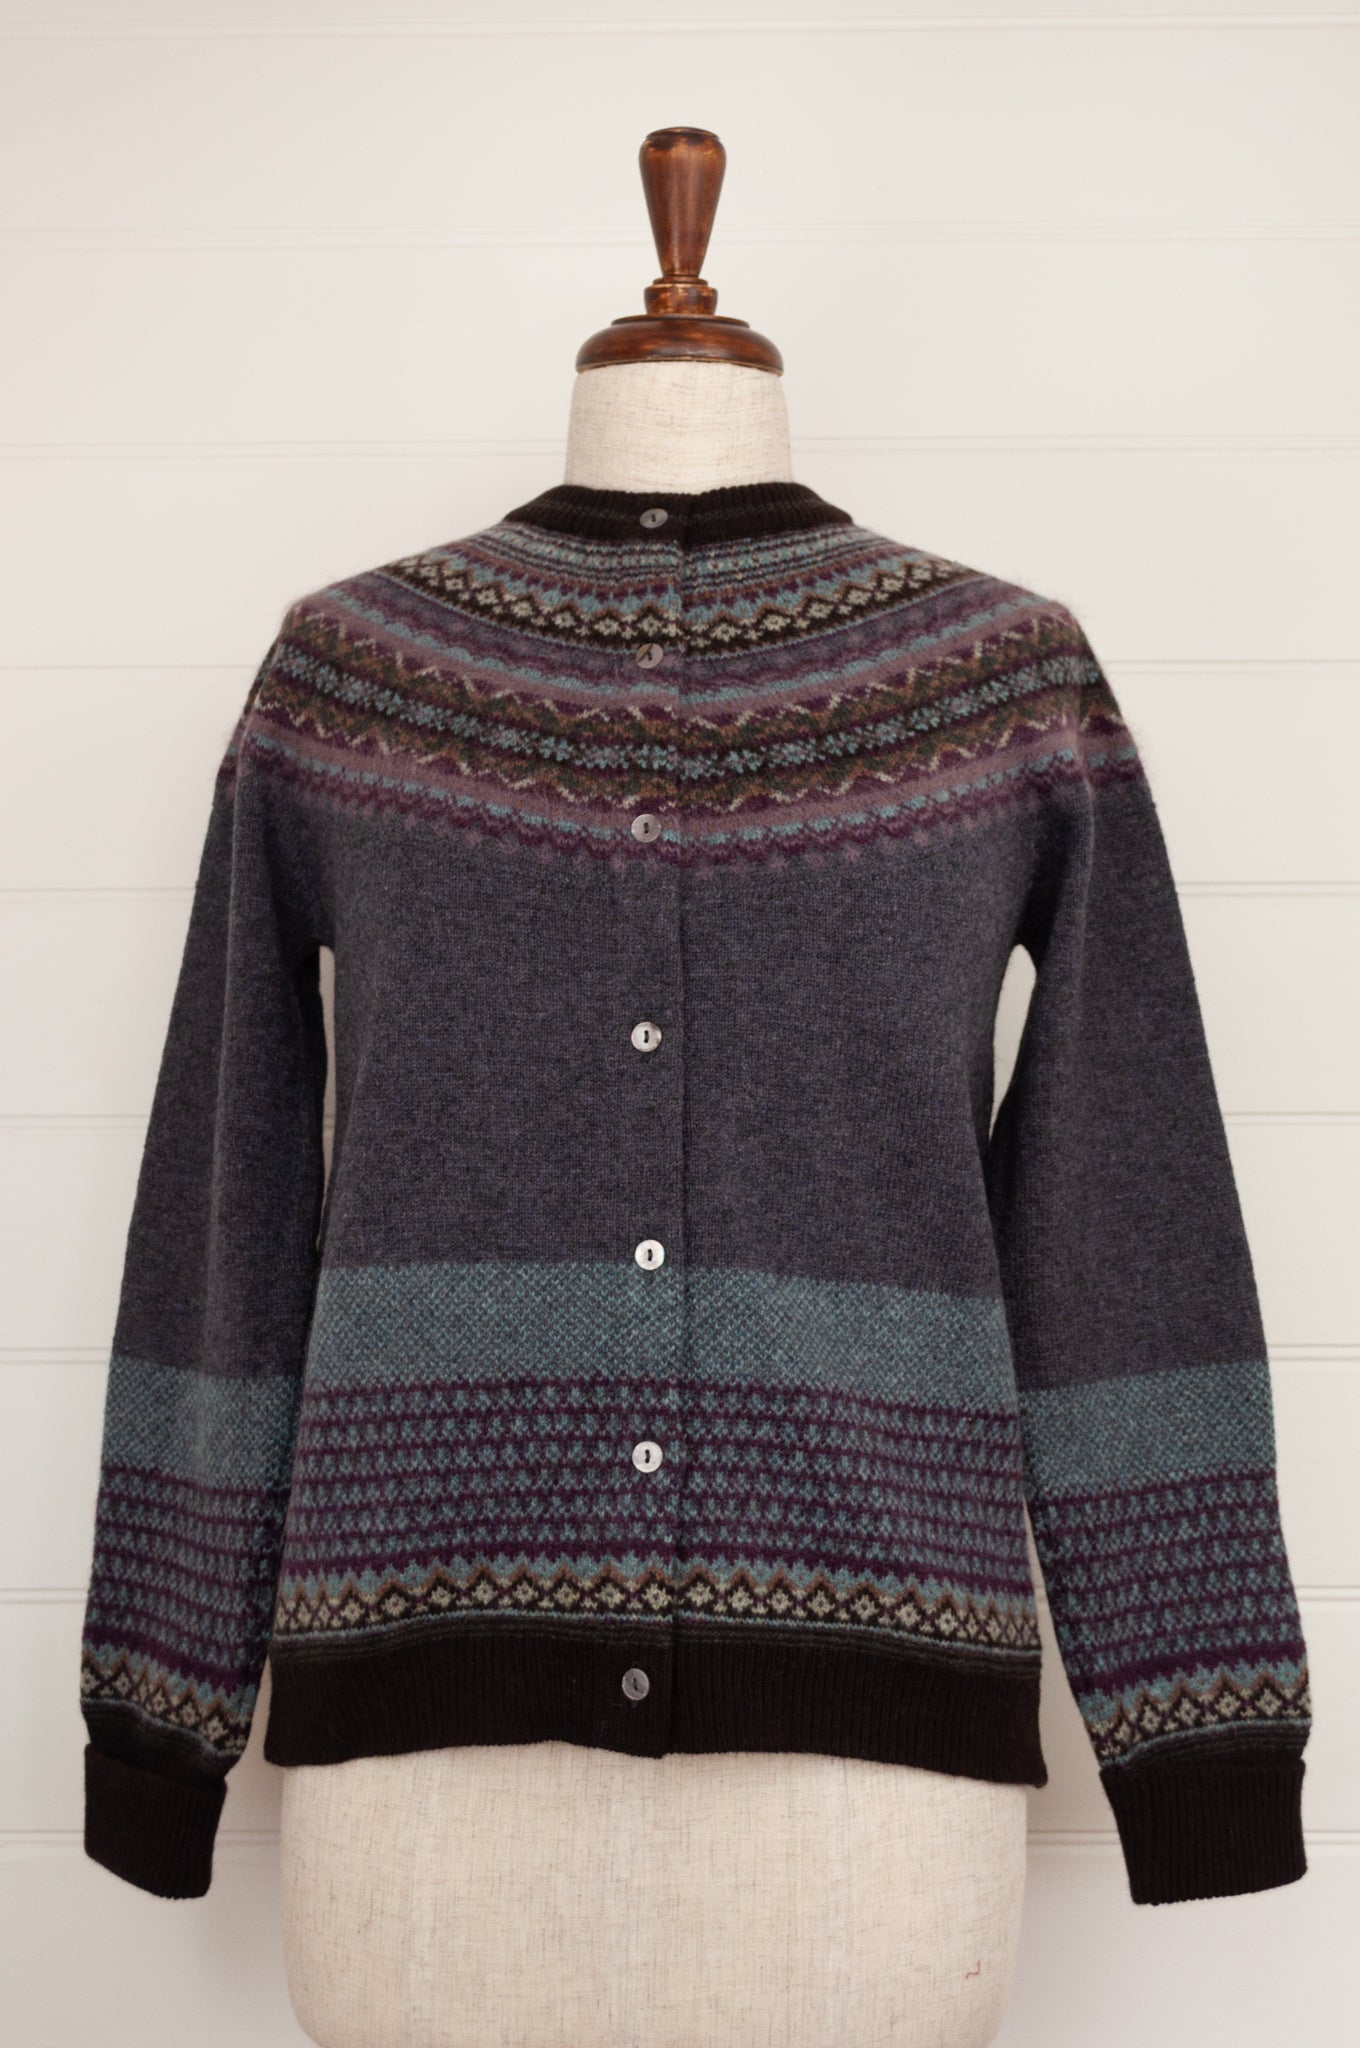 Eribé Selkie fairisle cardigan, merino wool with angora, in deep blue grey with purple, sky blue, ecru, toffee and chocolate brown highlights.